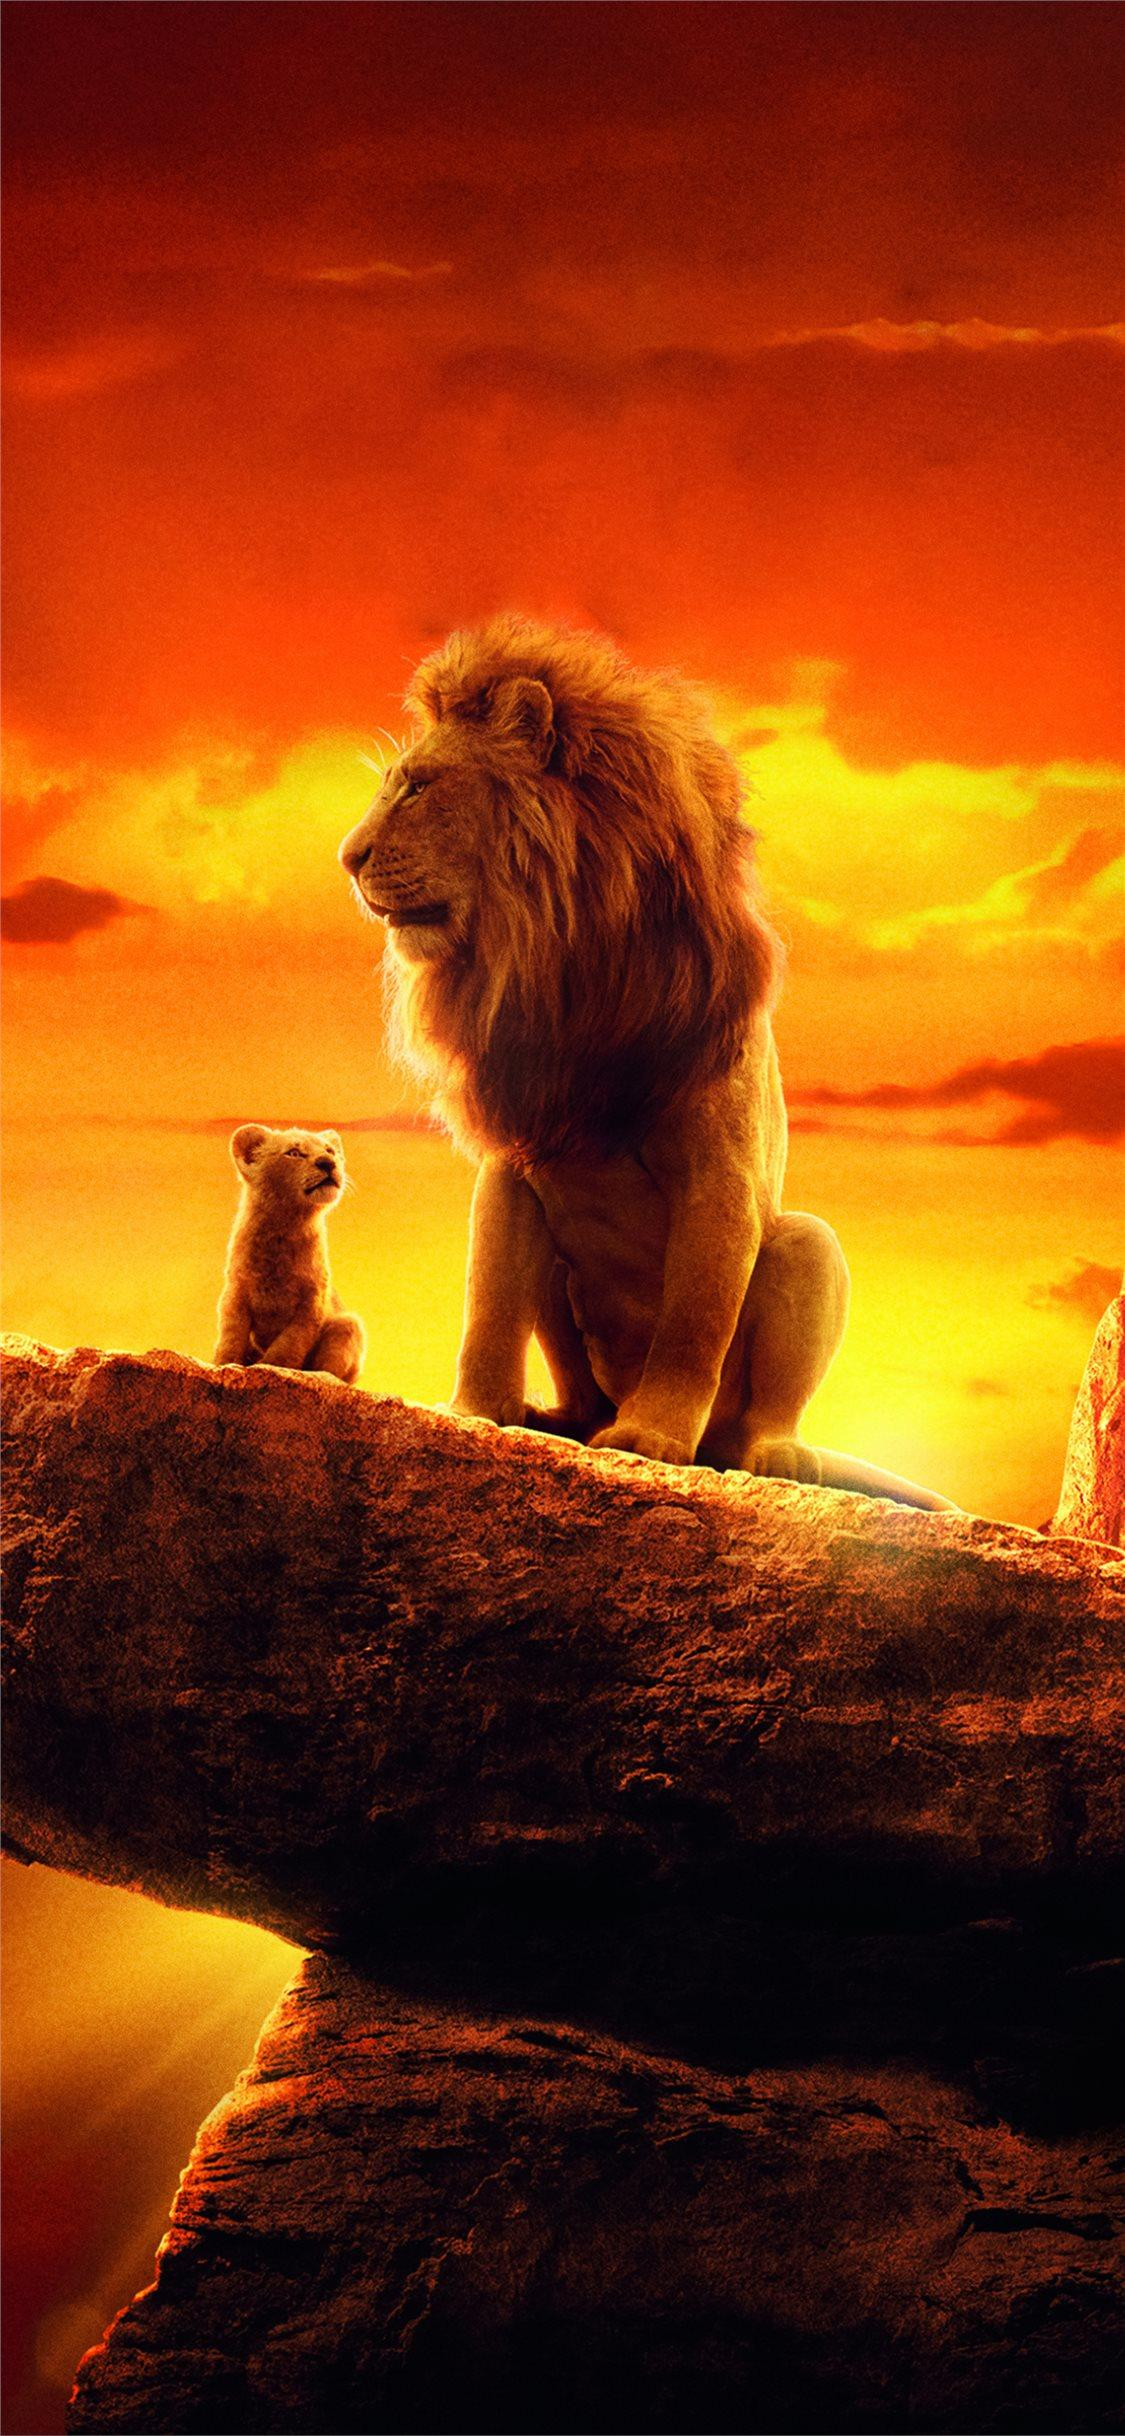 the lion king 2019 4k movie iPhone 11 Wallpapers Free Download